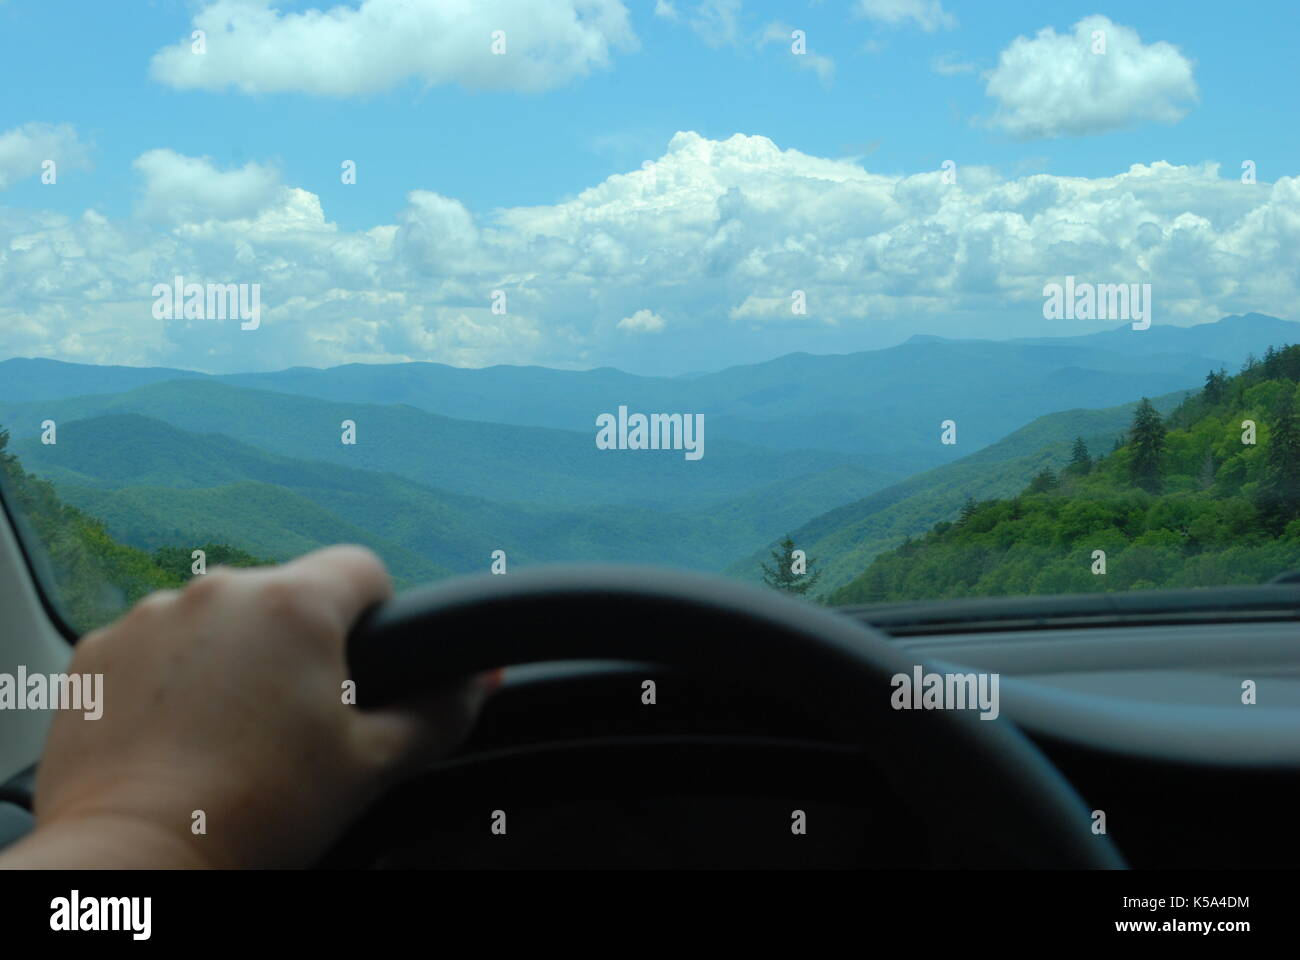 Driver stoped to watch Smoky Mountain. Man hand on steering wheel and fantastic view on blue mountains through the car window - Stock Image